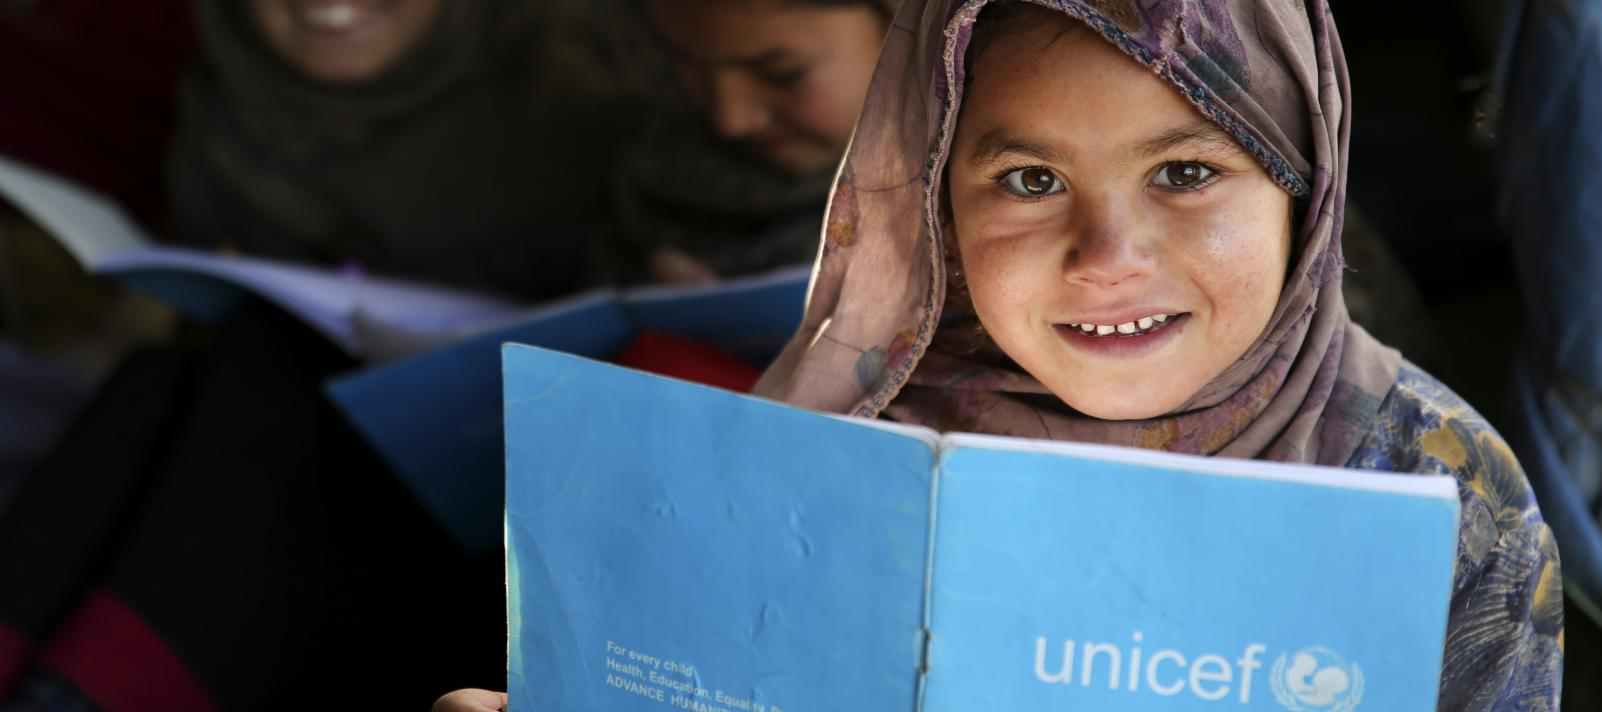 Muharra attends her class in UNICEF supported school in Jalozai camp, KPK